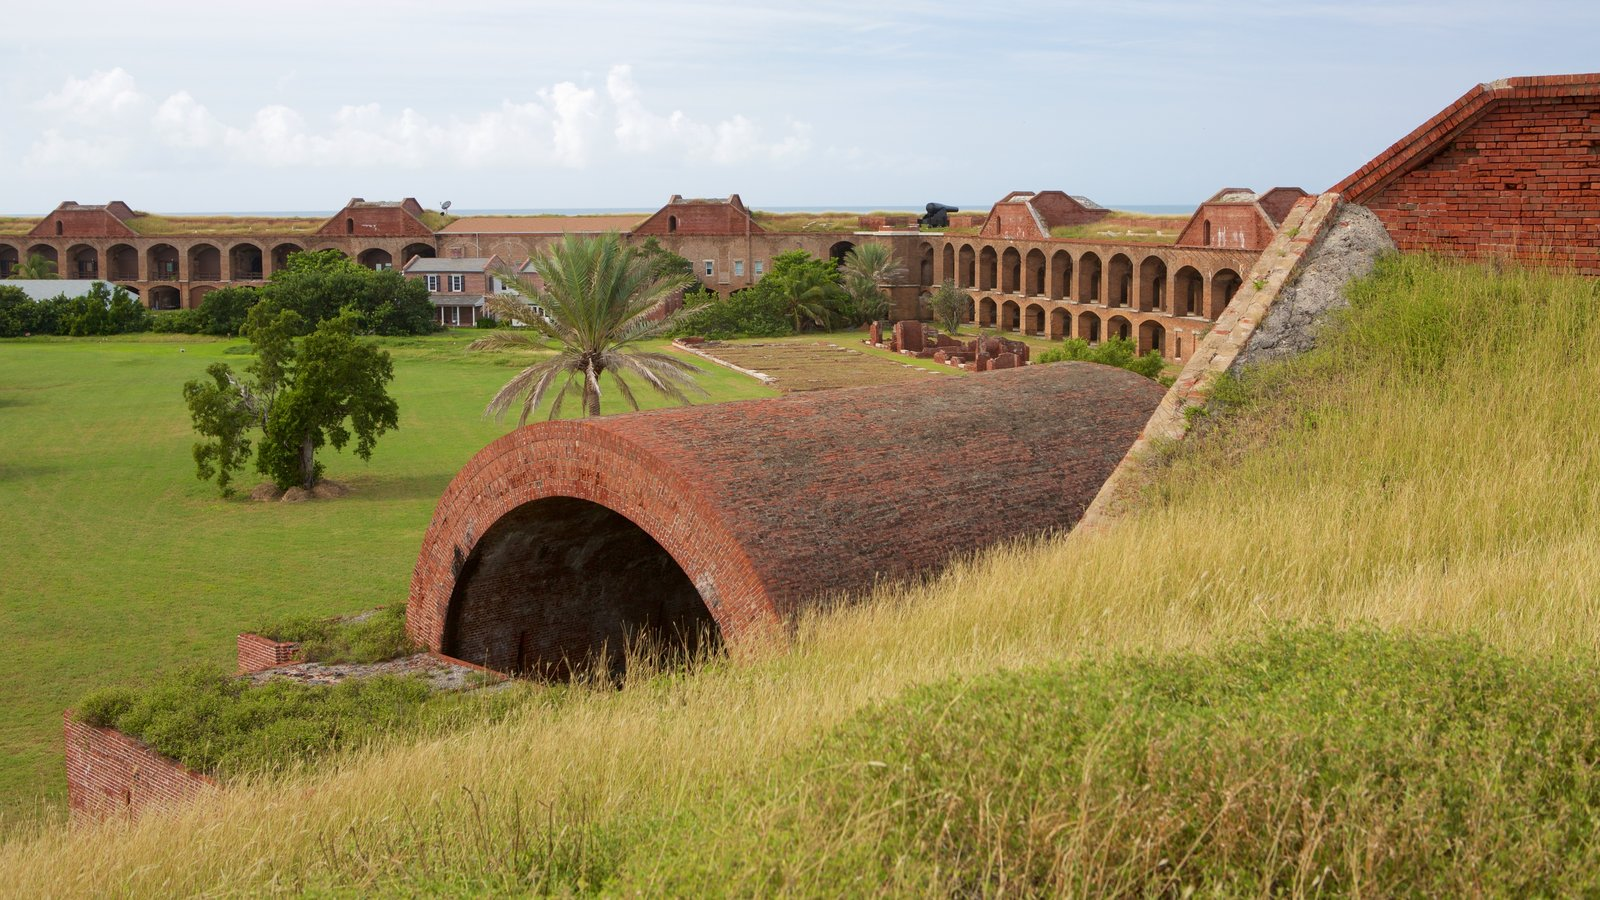 Dry Tortugas National Park which includes heritage architecture and a park